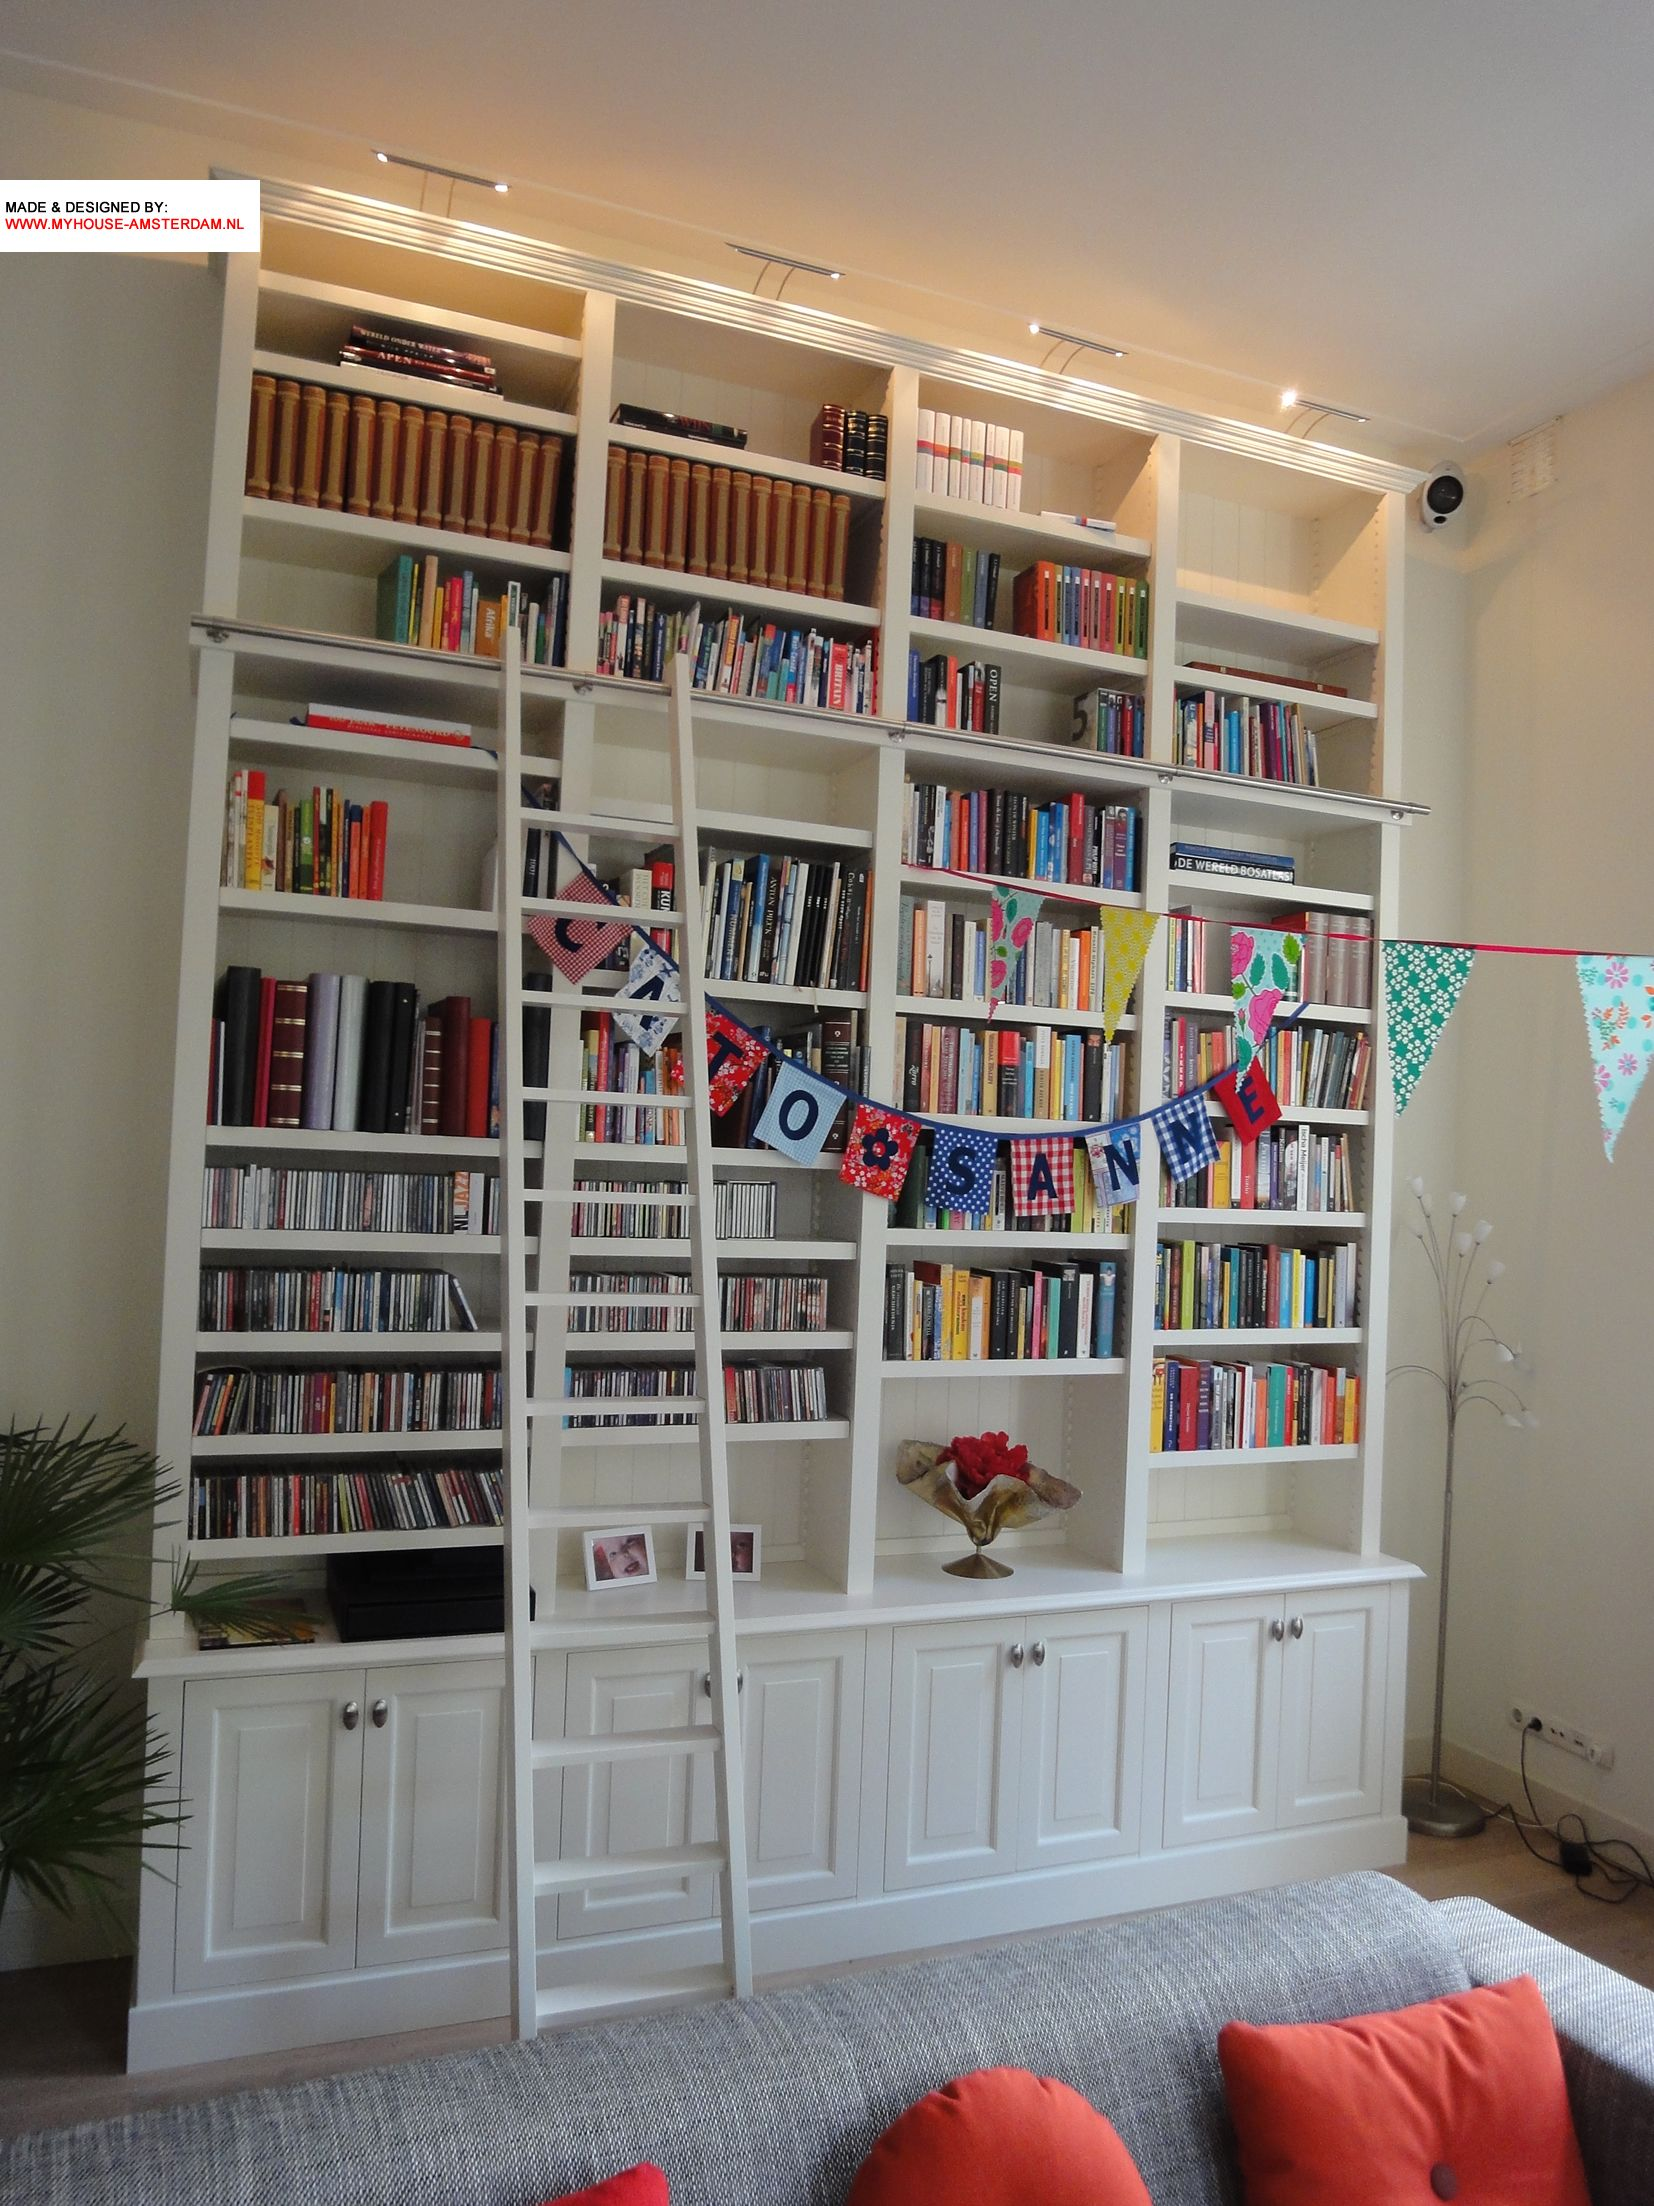 made bookcases a lot our did serve clients furniture expat oock interior trends of den haag and kitchens here interieurbouw we custom cabinets know with amsterdam in design that you